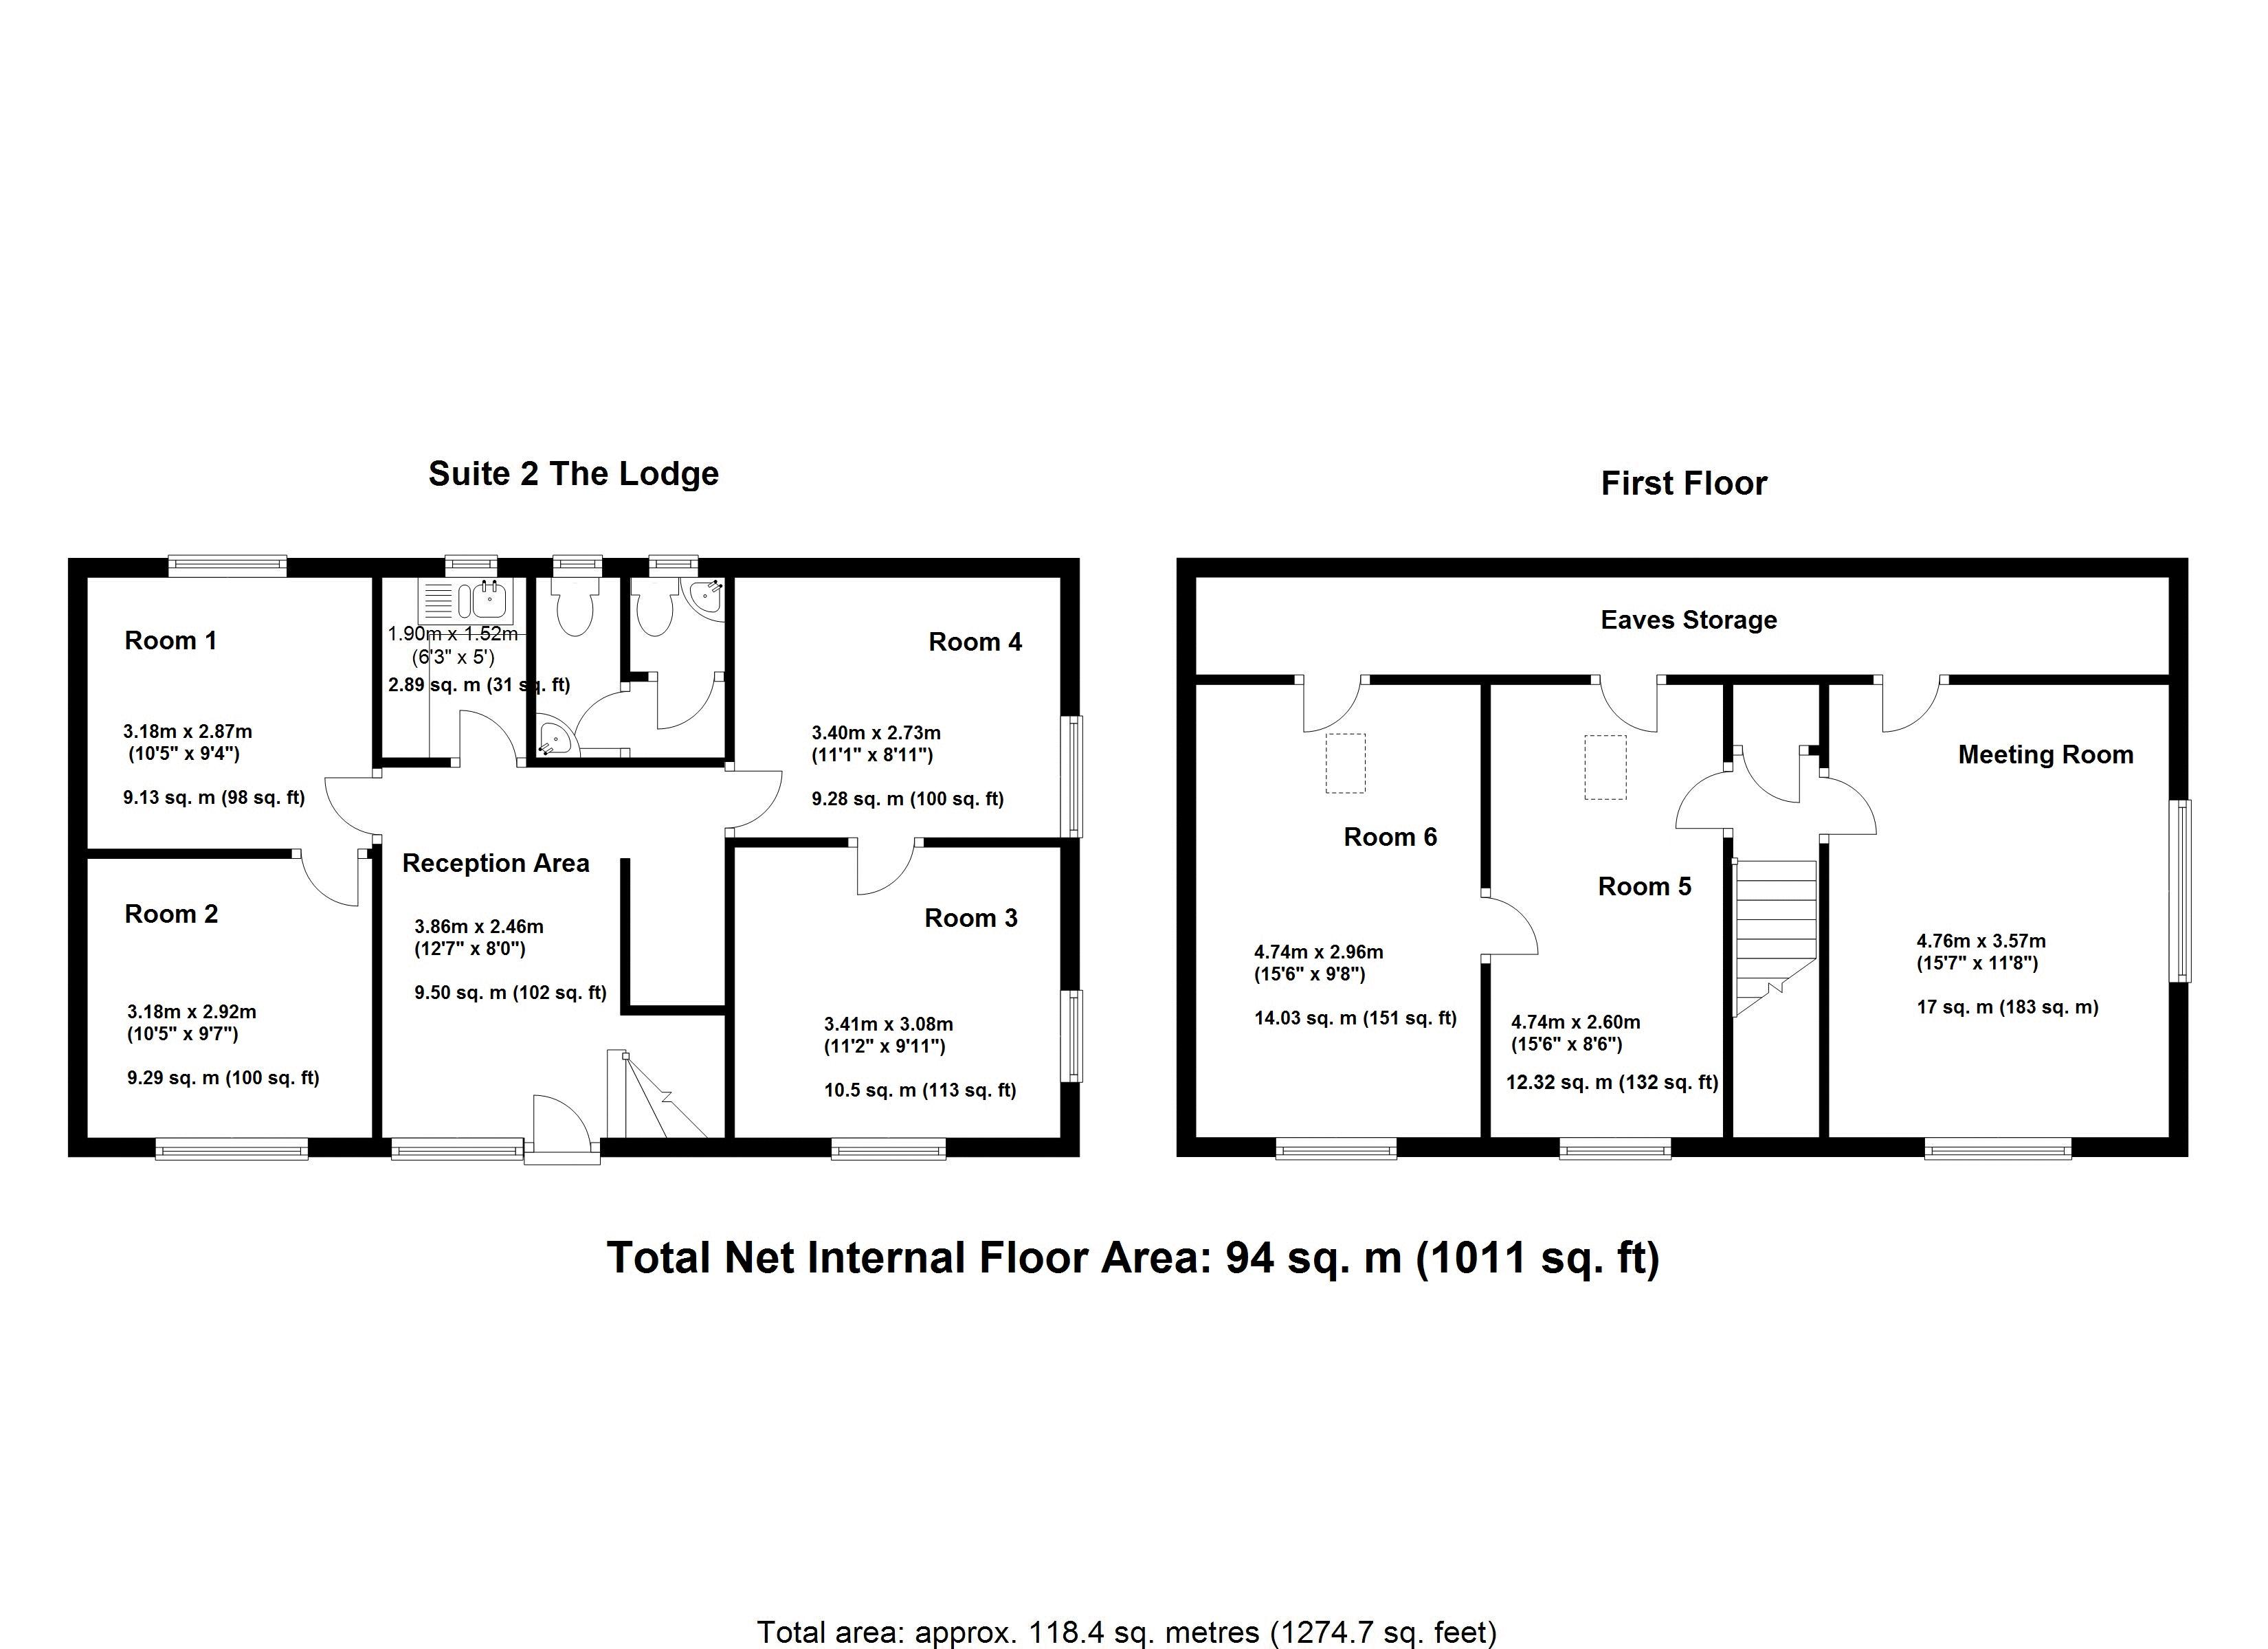 Suite 2 - The Lodge - Floor Plan